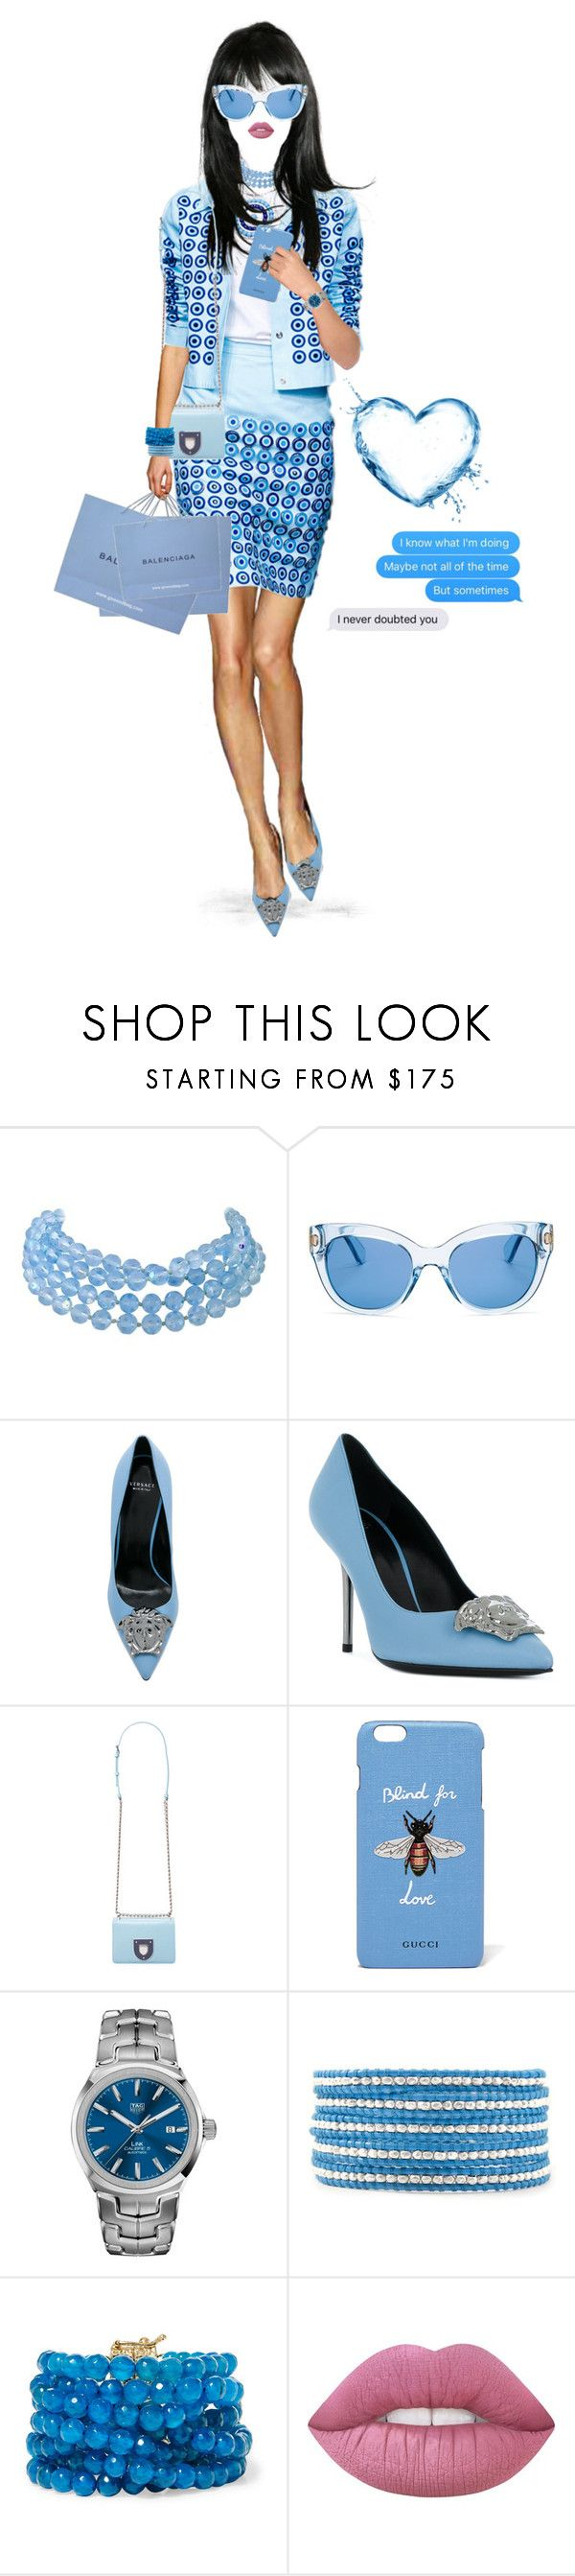 """""""Note to Self."""" by shellygregory ❤ liked on Polyvore featuring Holly Fulton, Kate Spade, Versace, Gucci, TAG Heuer, Rosantica, Bodhi, Blue, shopping and sunday"""